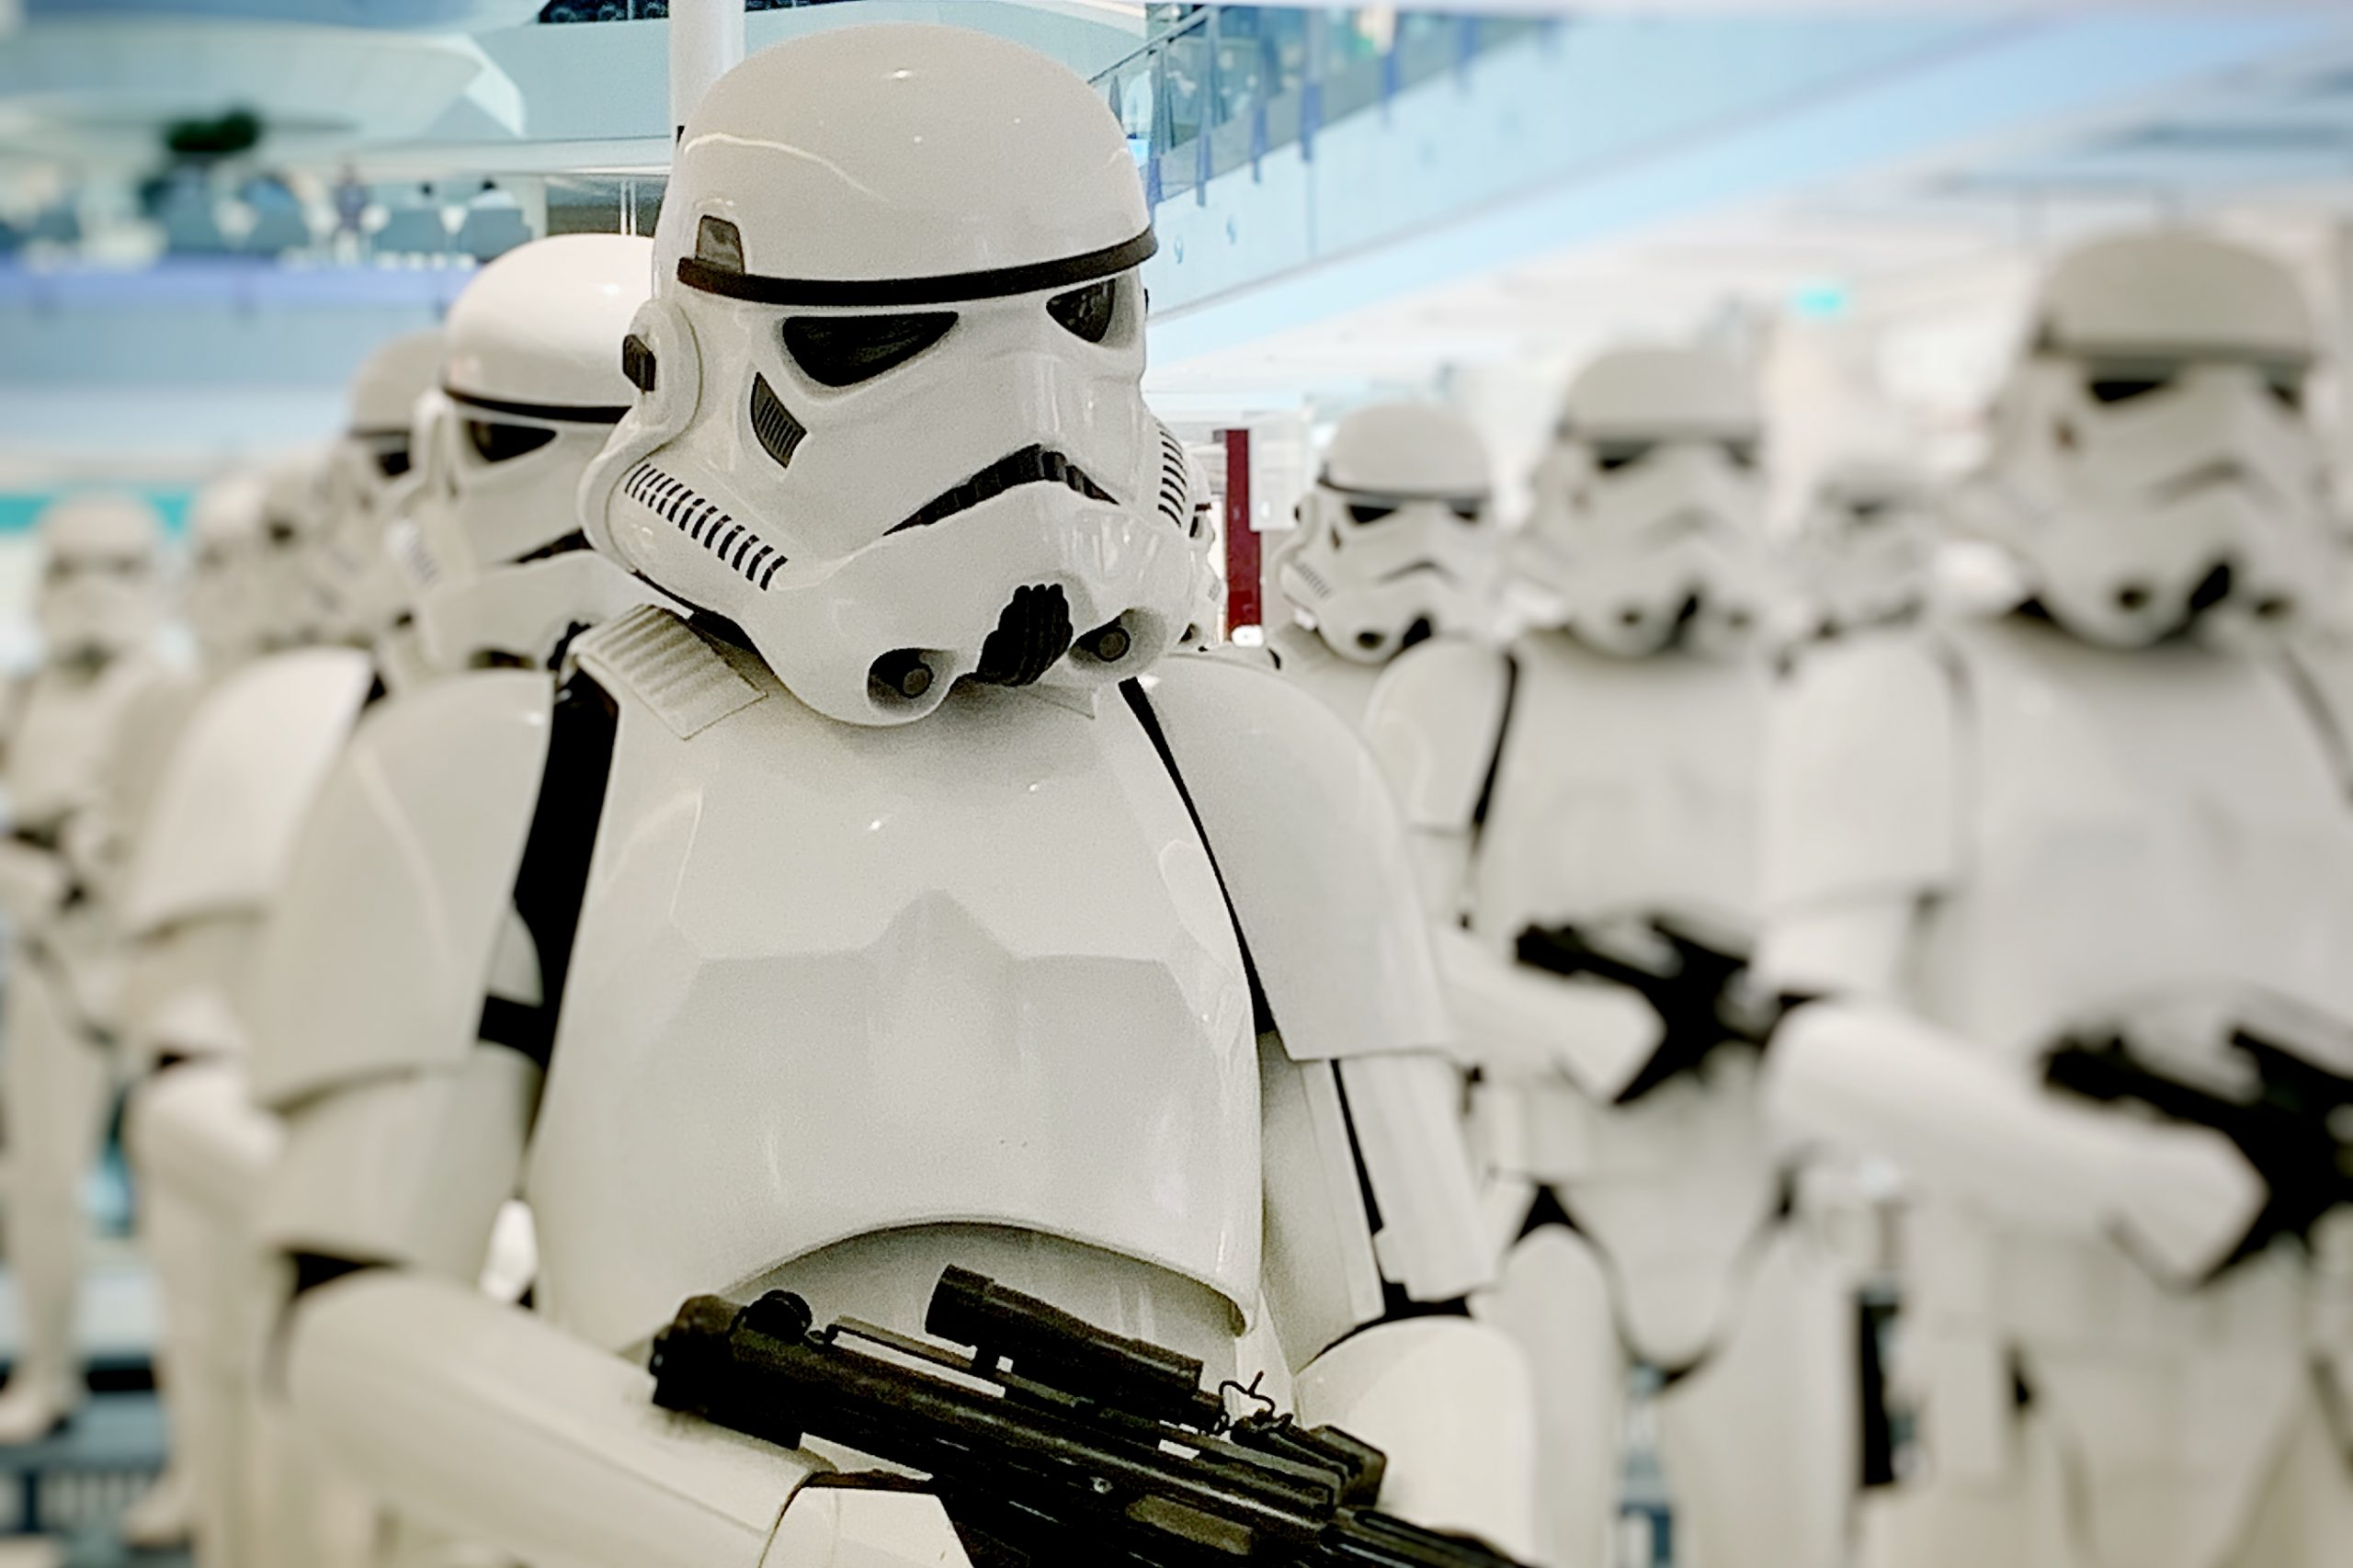 The Mandalorian caps off with hilarious portrayal of stormtroopers